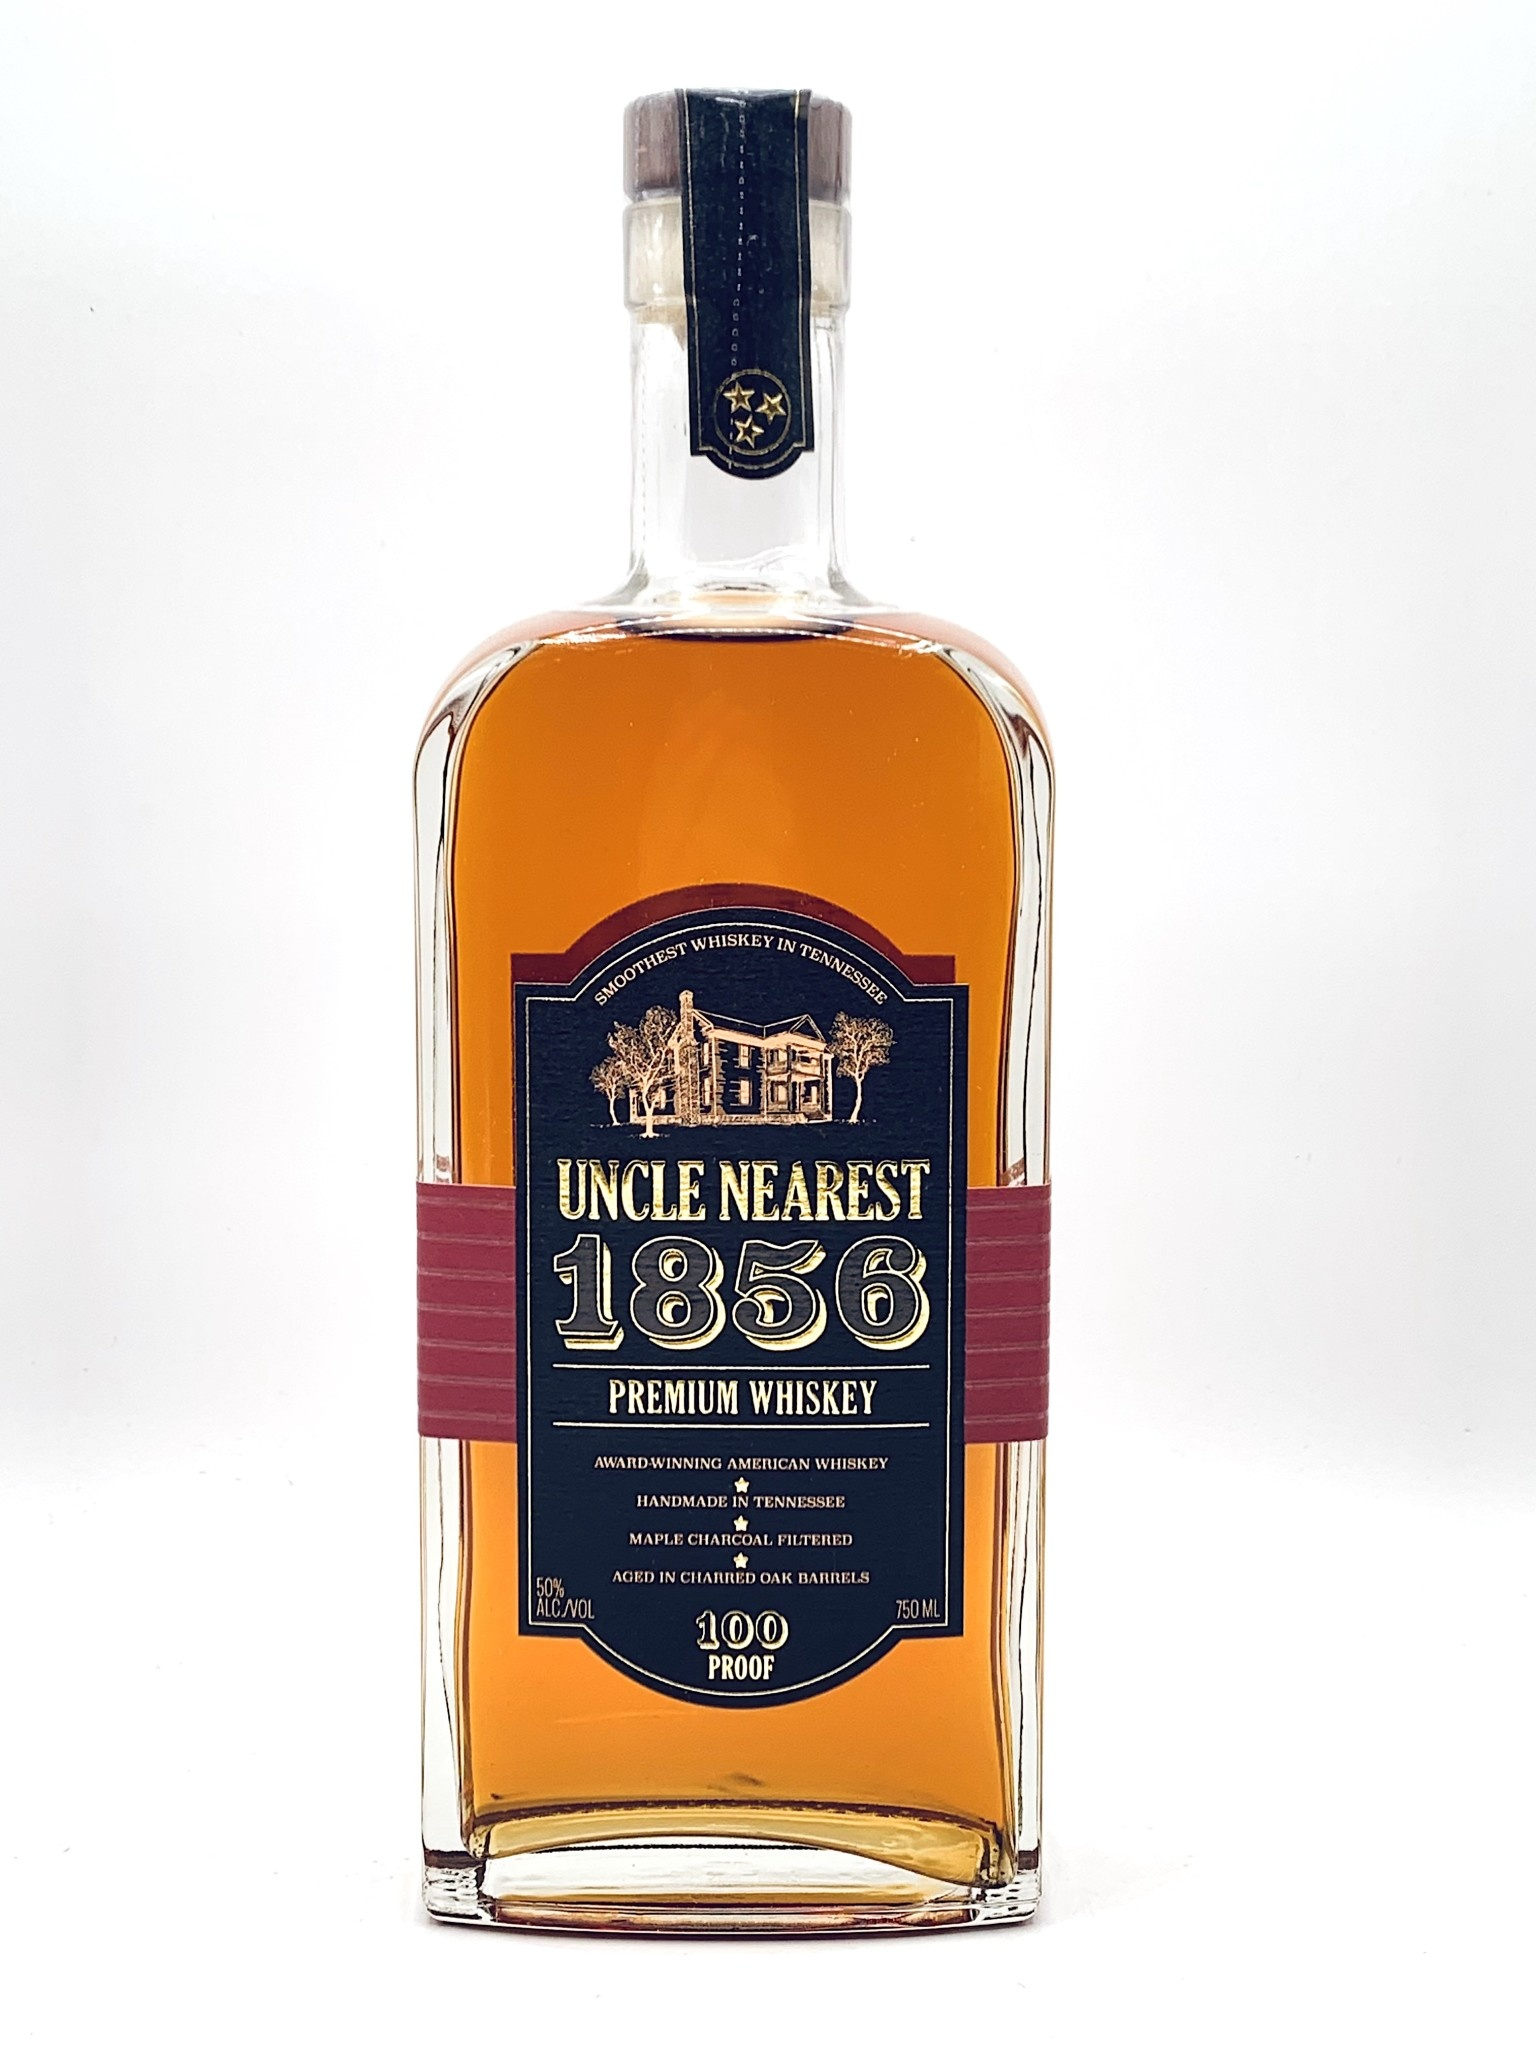 Uncle Nearest 1856 Tennessee Premium Whiskey 750ml (100 proof)